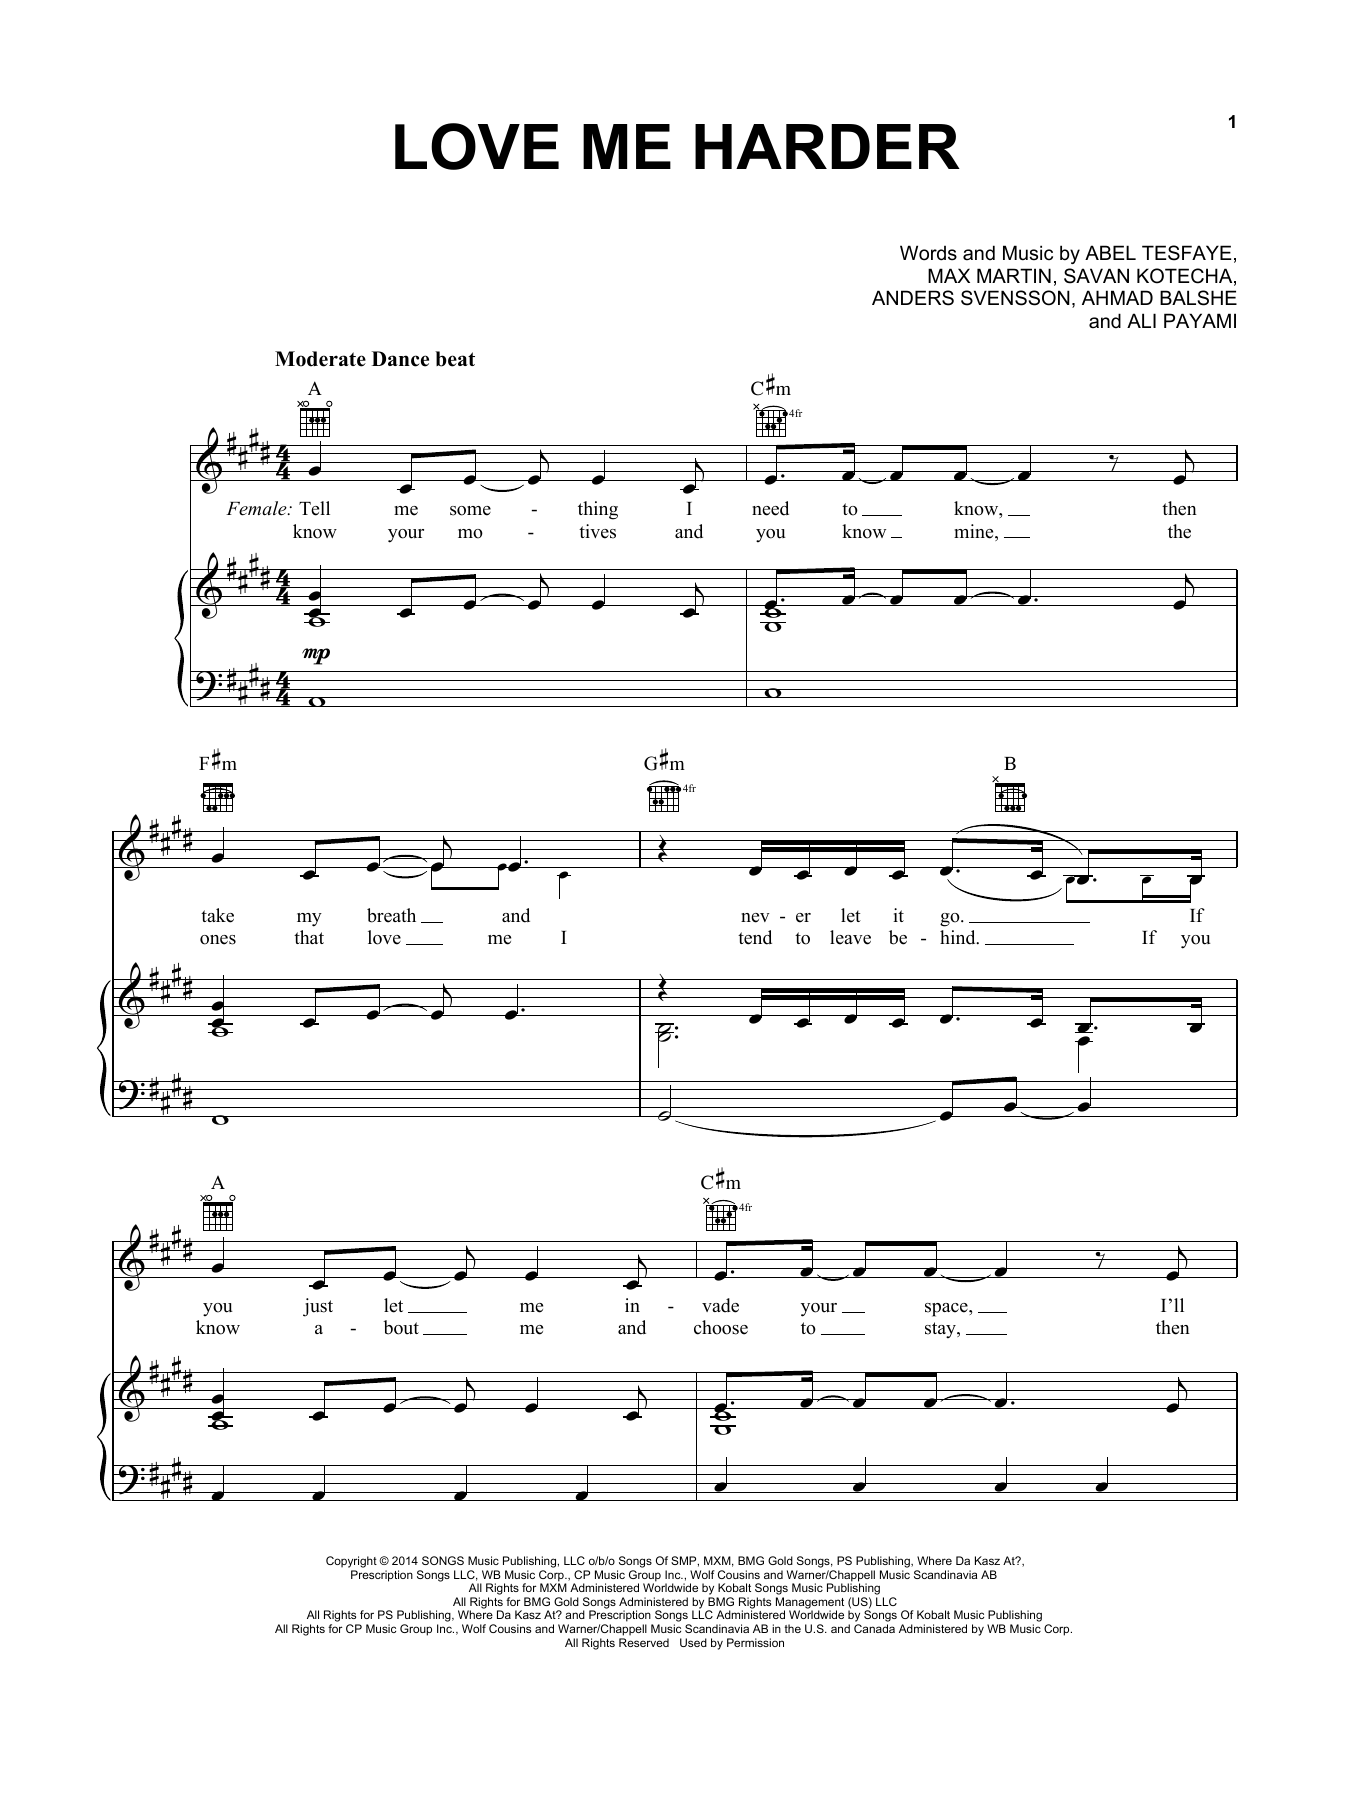 Ariana Grande & The Weeknd Love Me Harder sheet music notes and chords. Download Printable PDF.